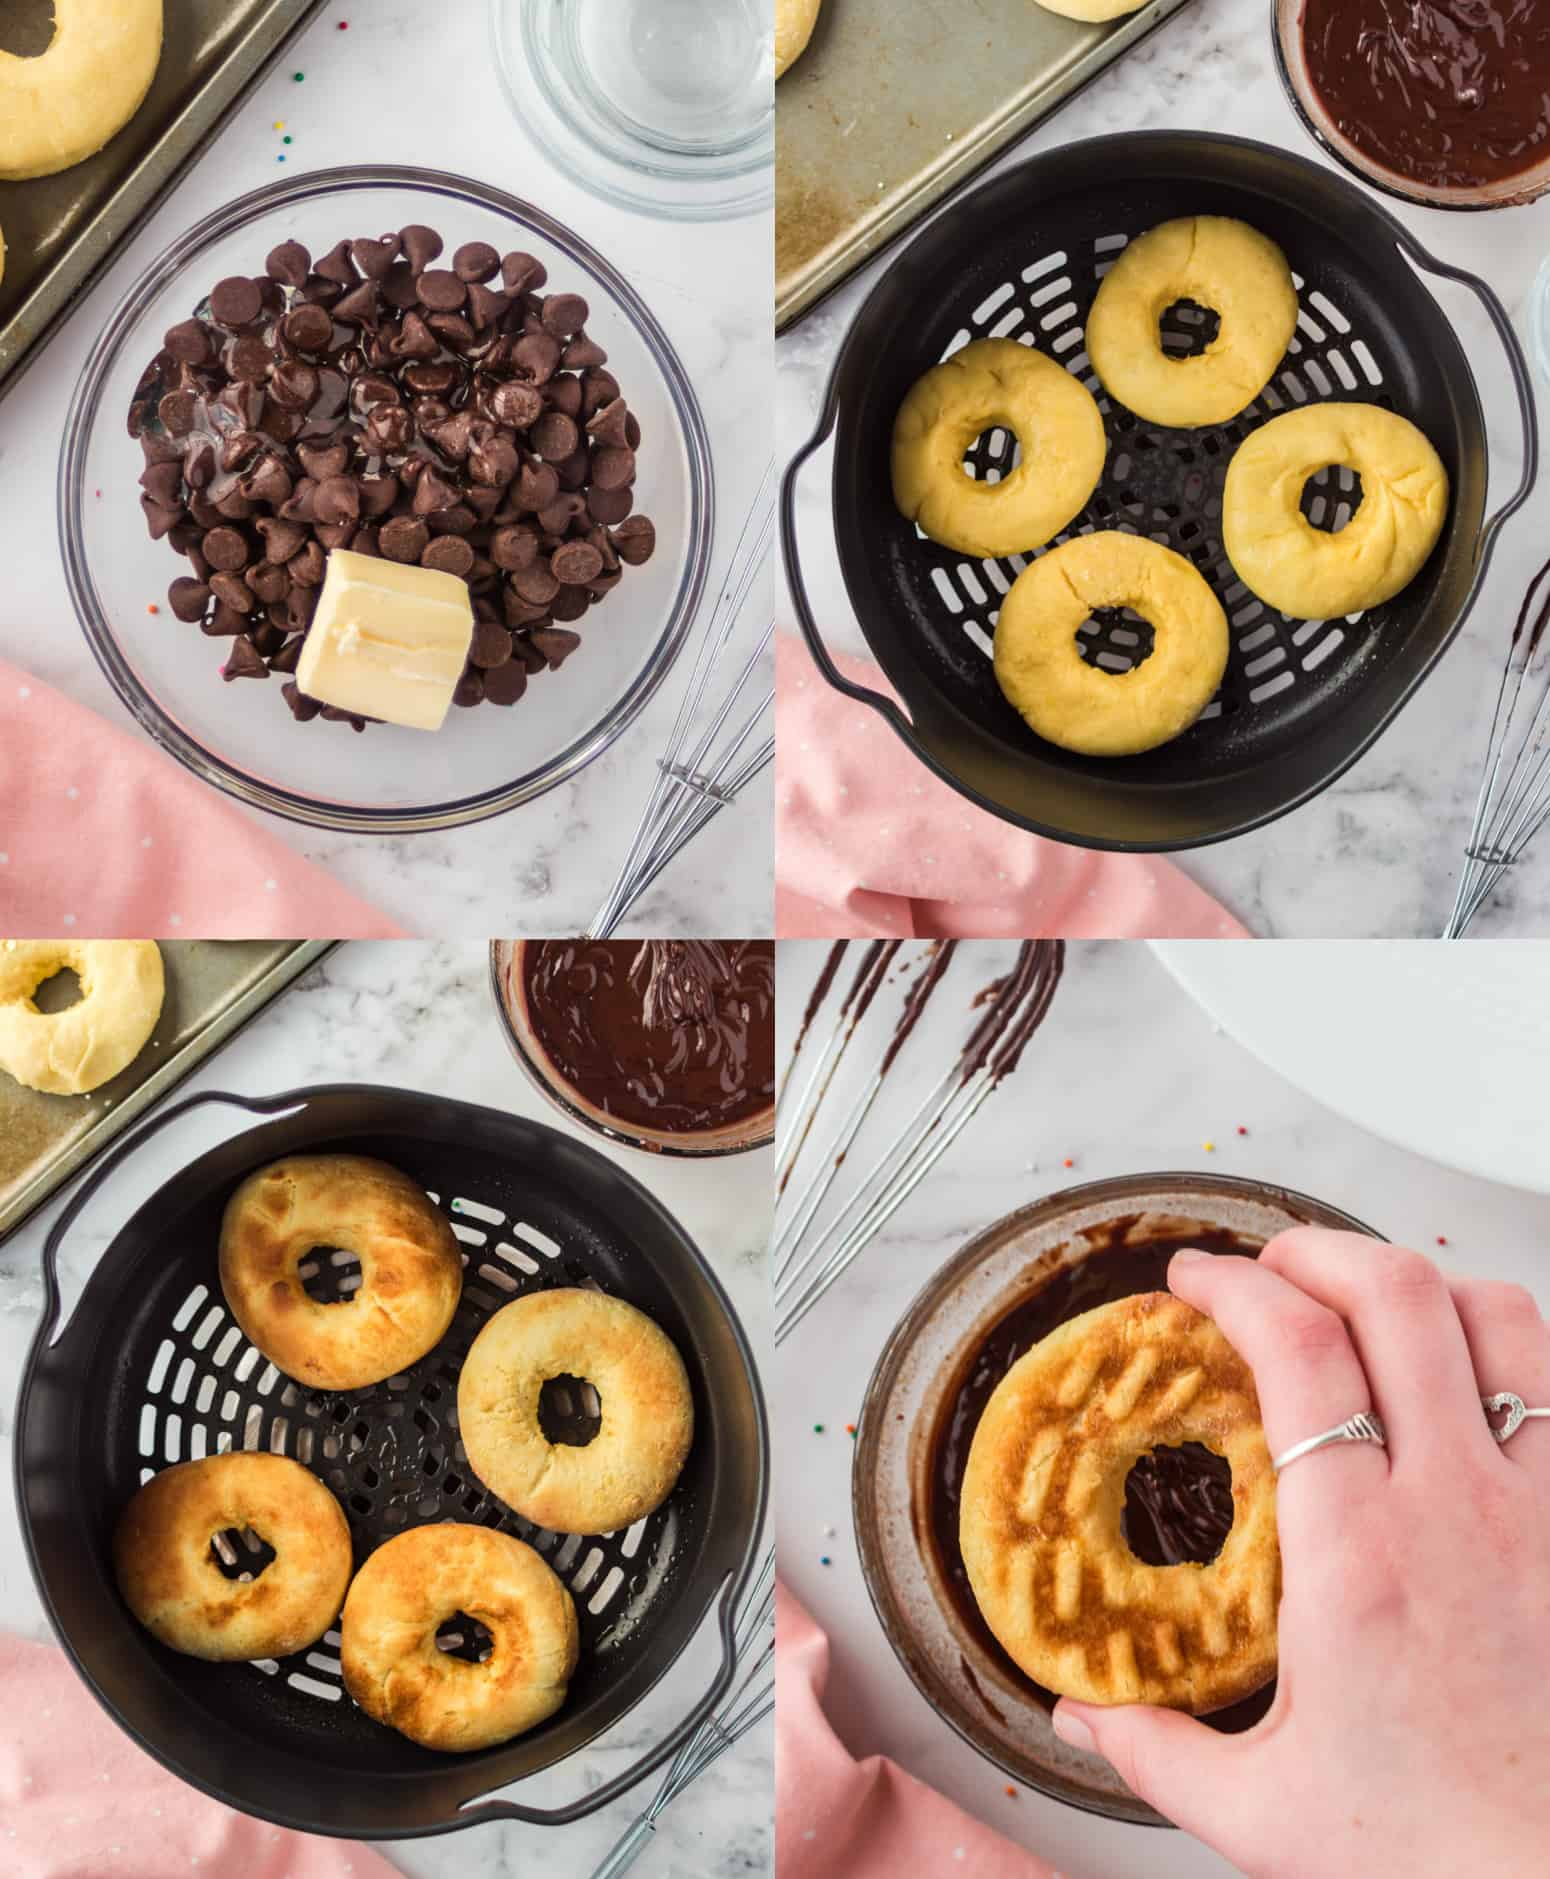 Four process photos. First one, chocolate chips and butter in a small bowl ready to be melted. Second one, four donuts placed in the air fryer basket. Third one, donuts that are done cooking. Fourth one, A donuts being dipped in melted chocolate.